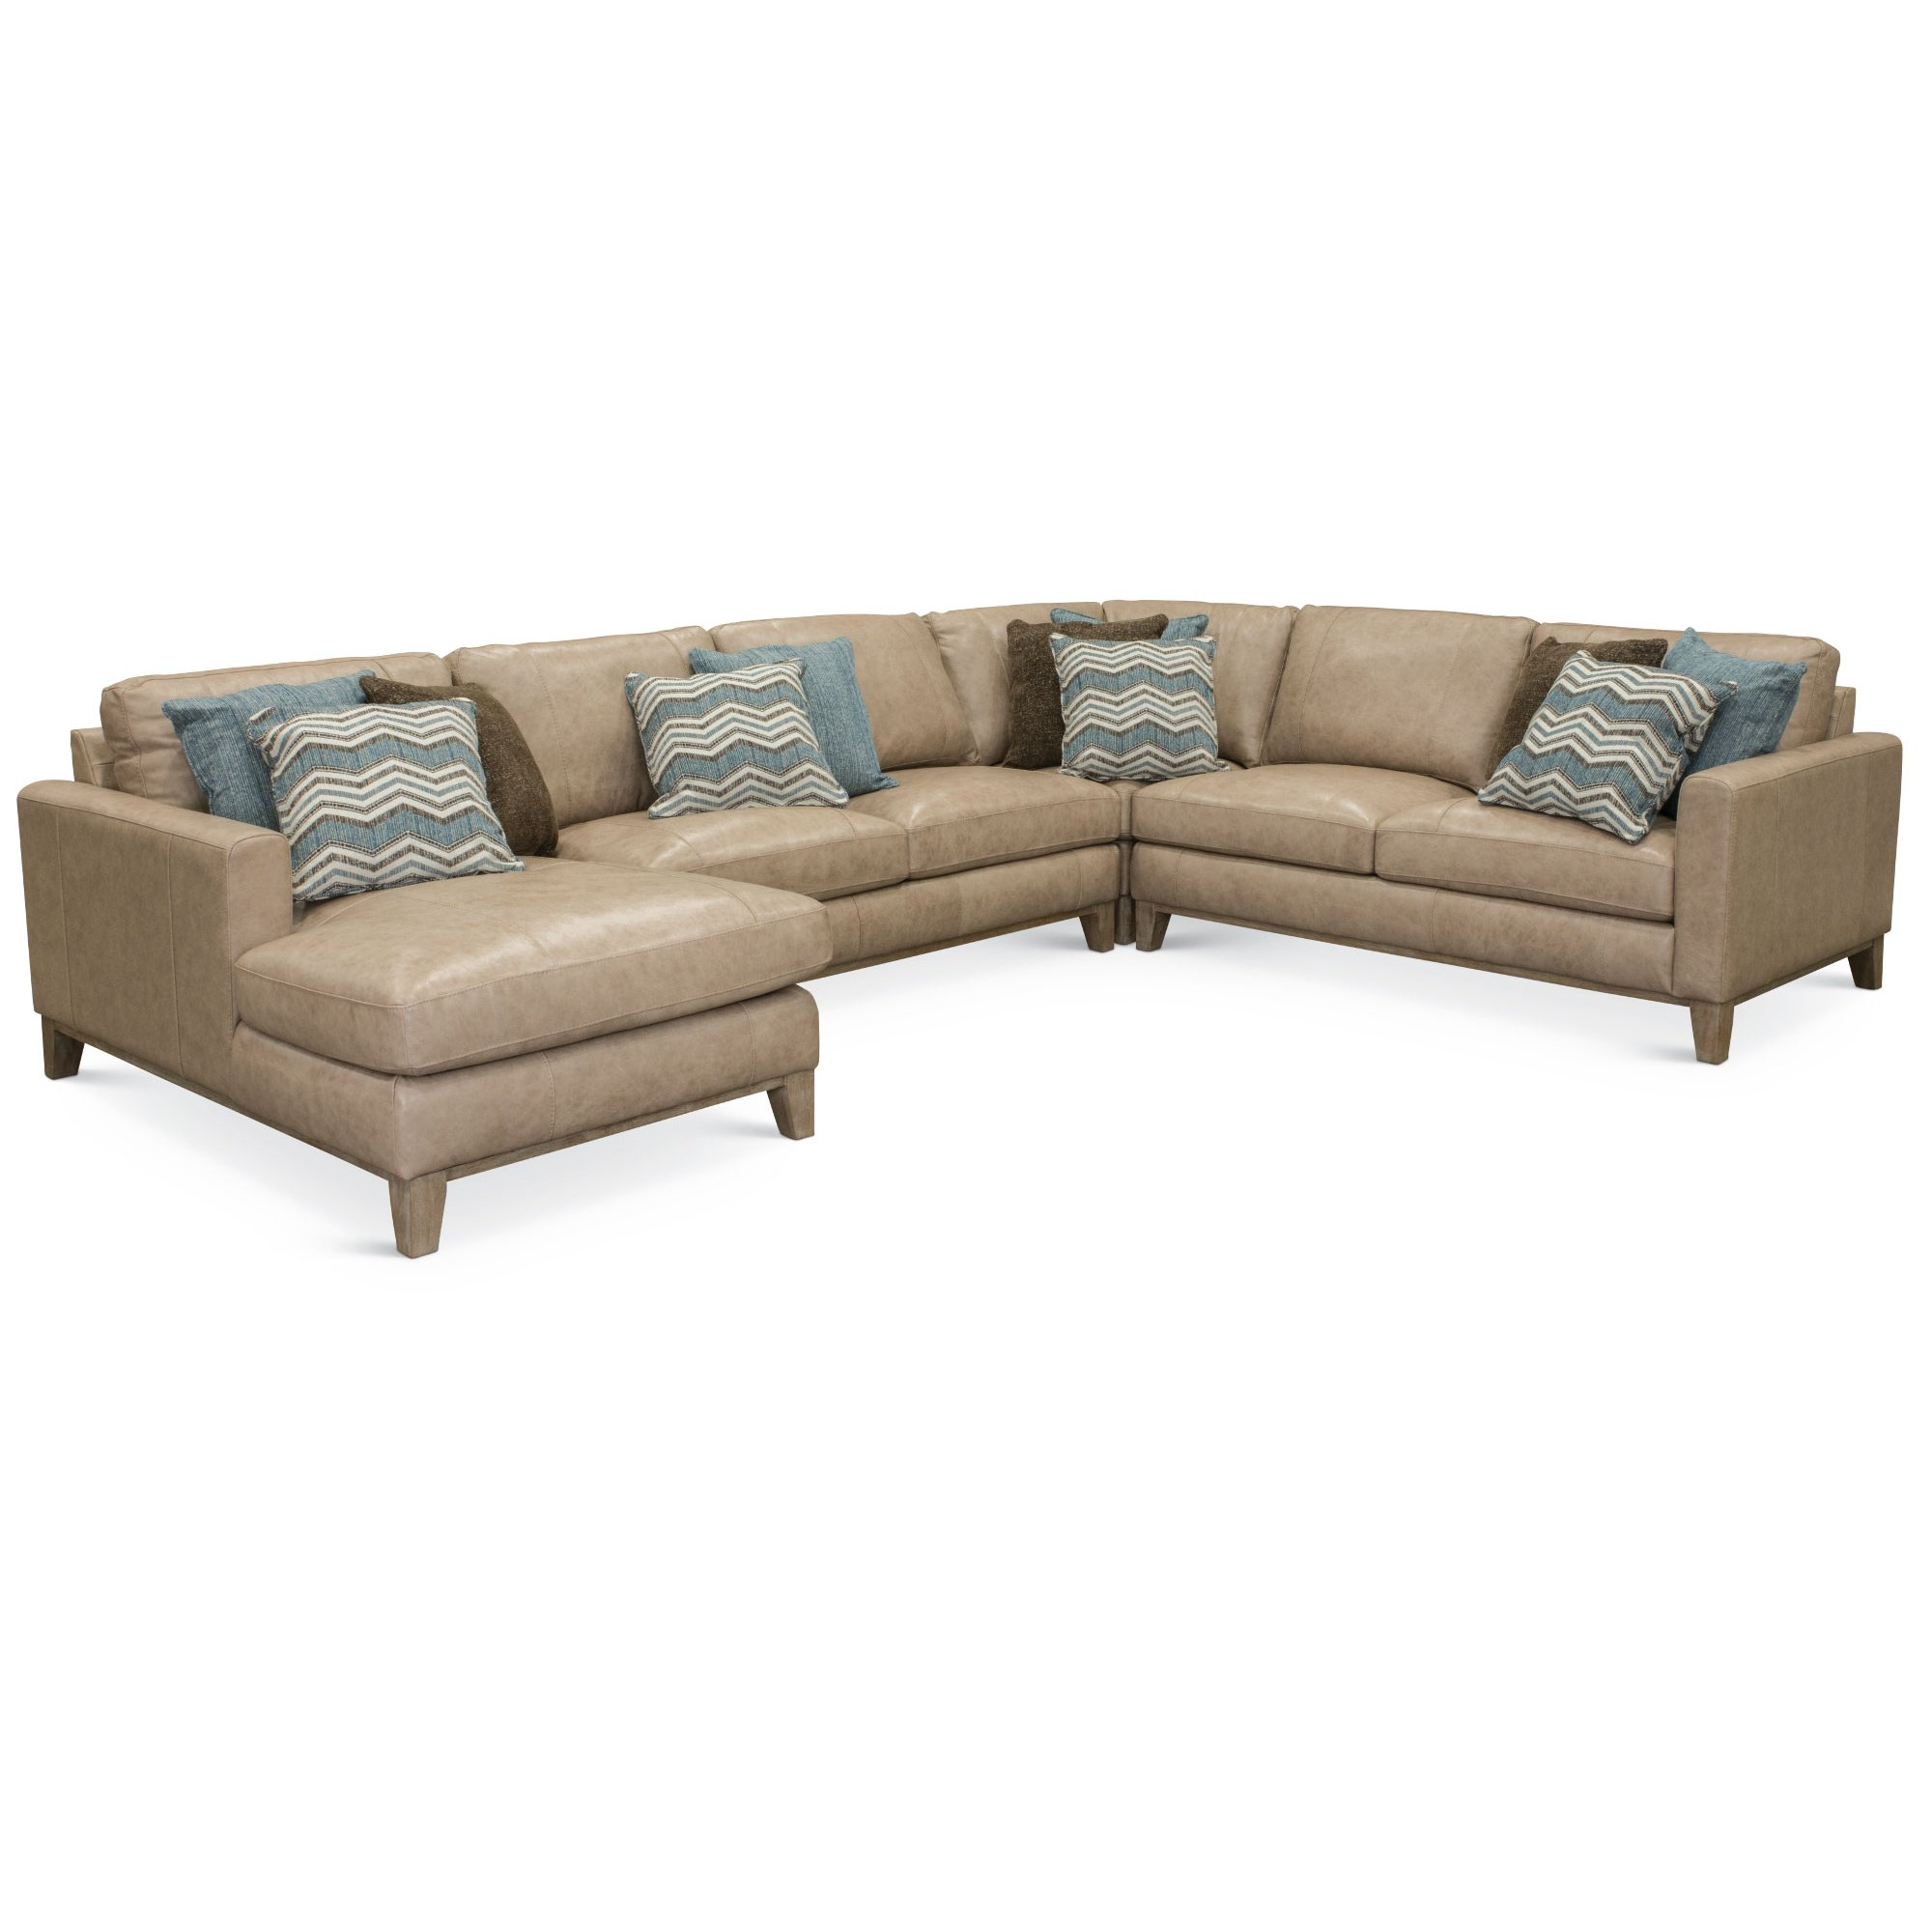 Sand Leather 4 Piece Sectional Sofa with LAF Chaise - Mutual